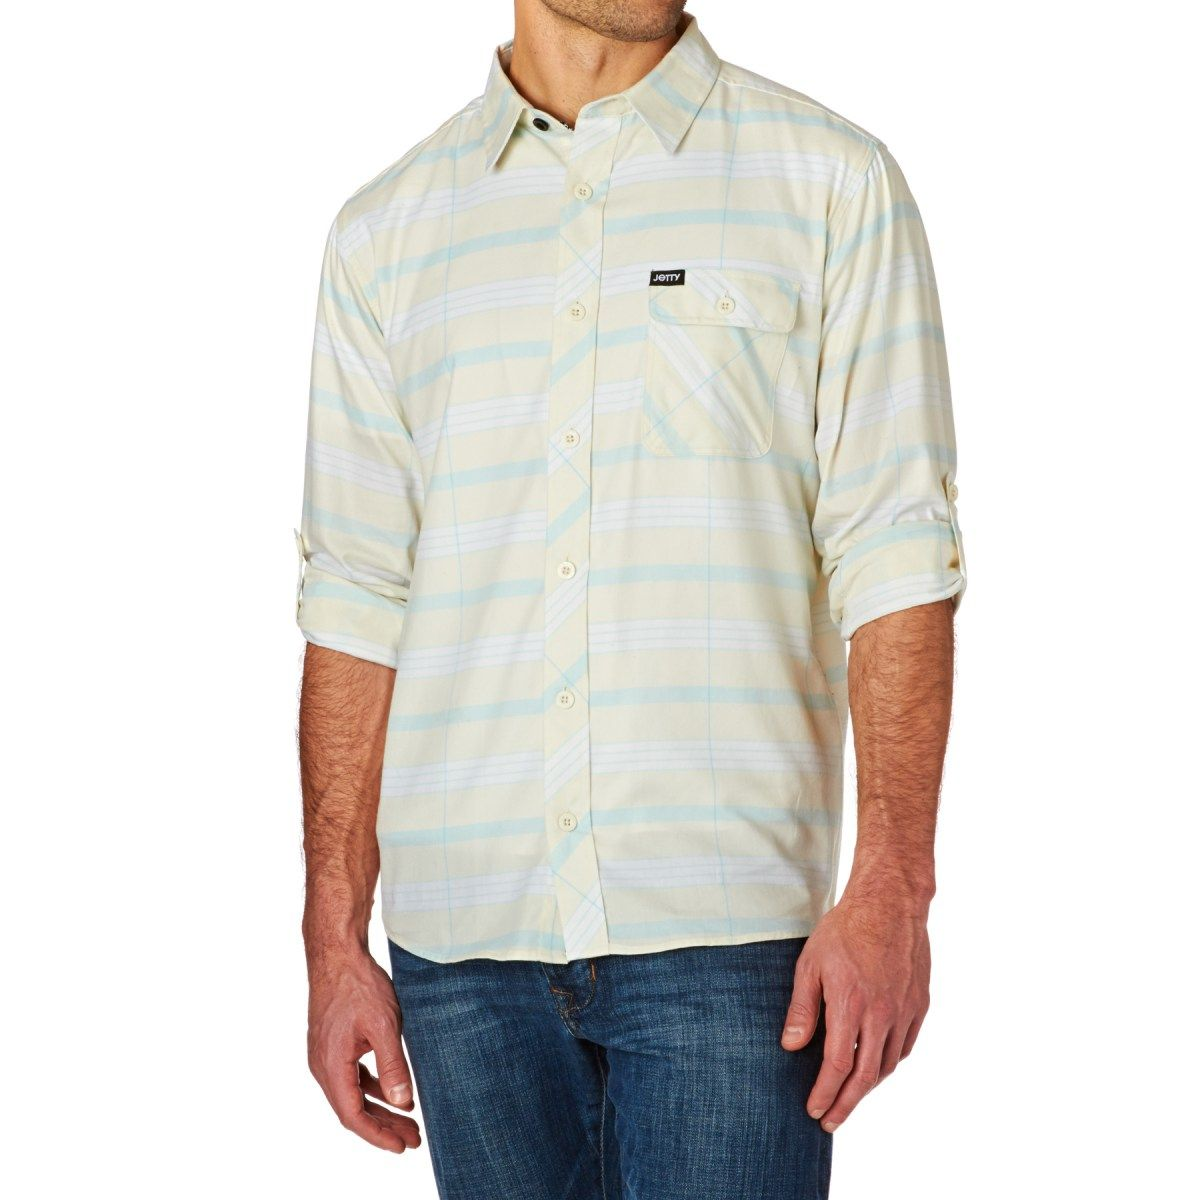 34bcf859a3 Men s Jetty Shirts - Jetty Piper (Eggshell) Shirt - White ...